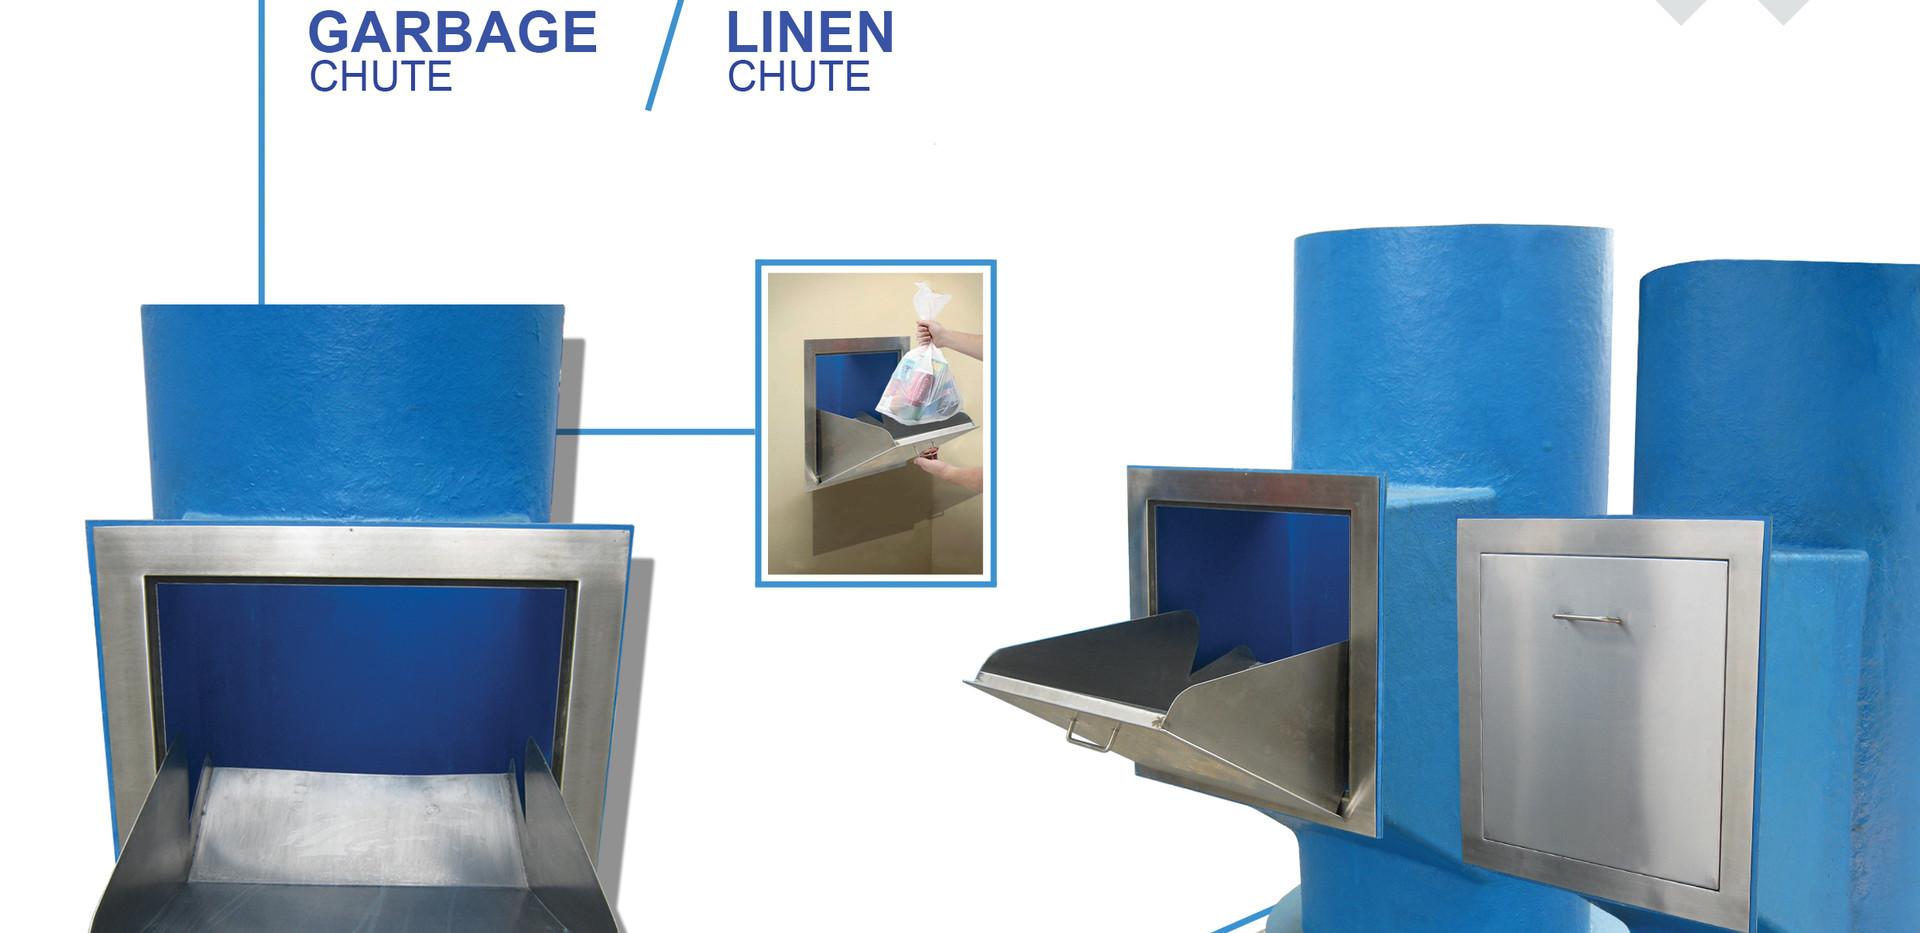 Garbage and Linen Chute